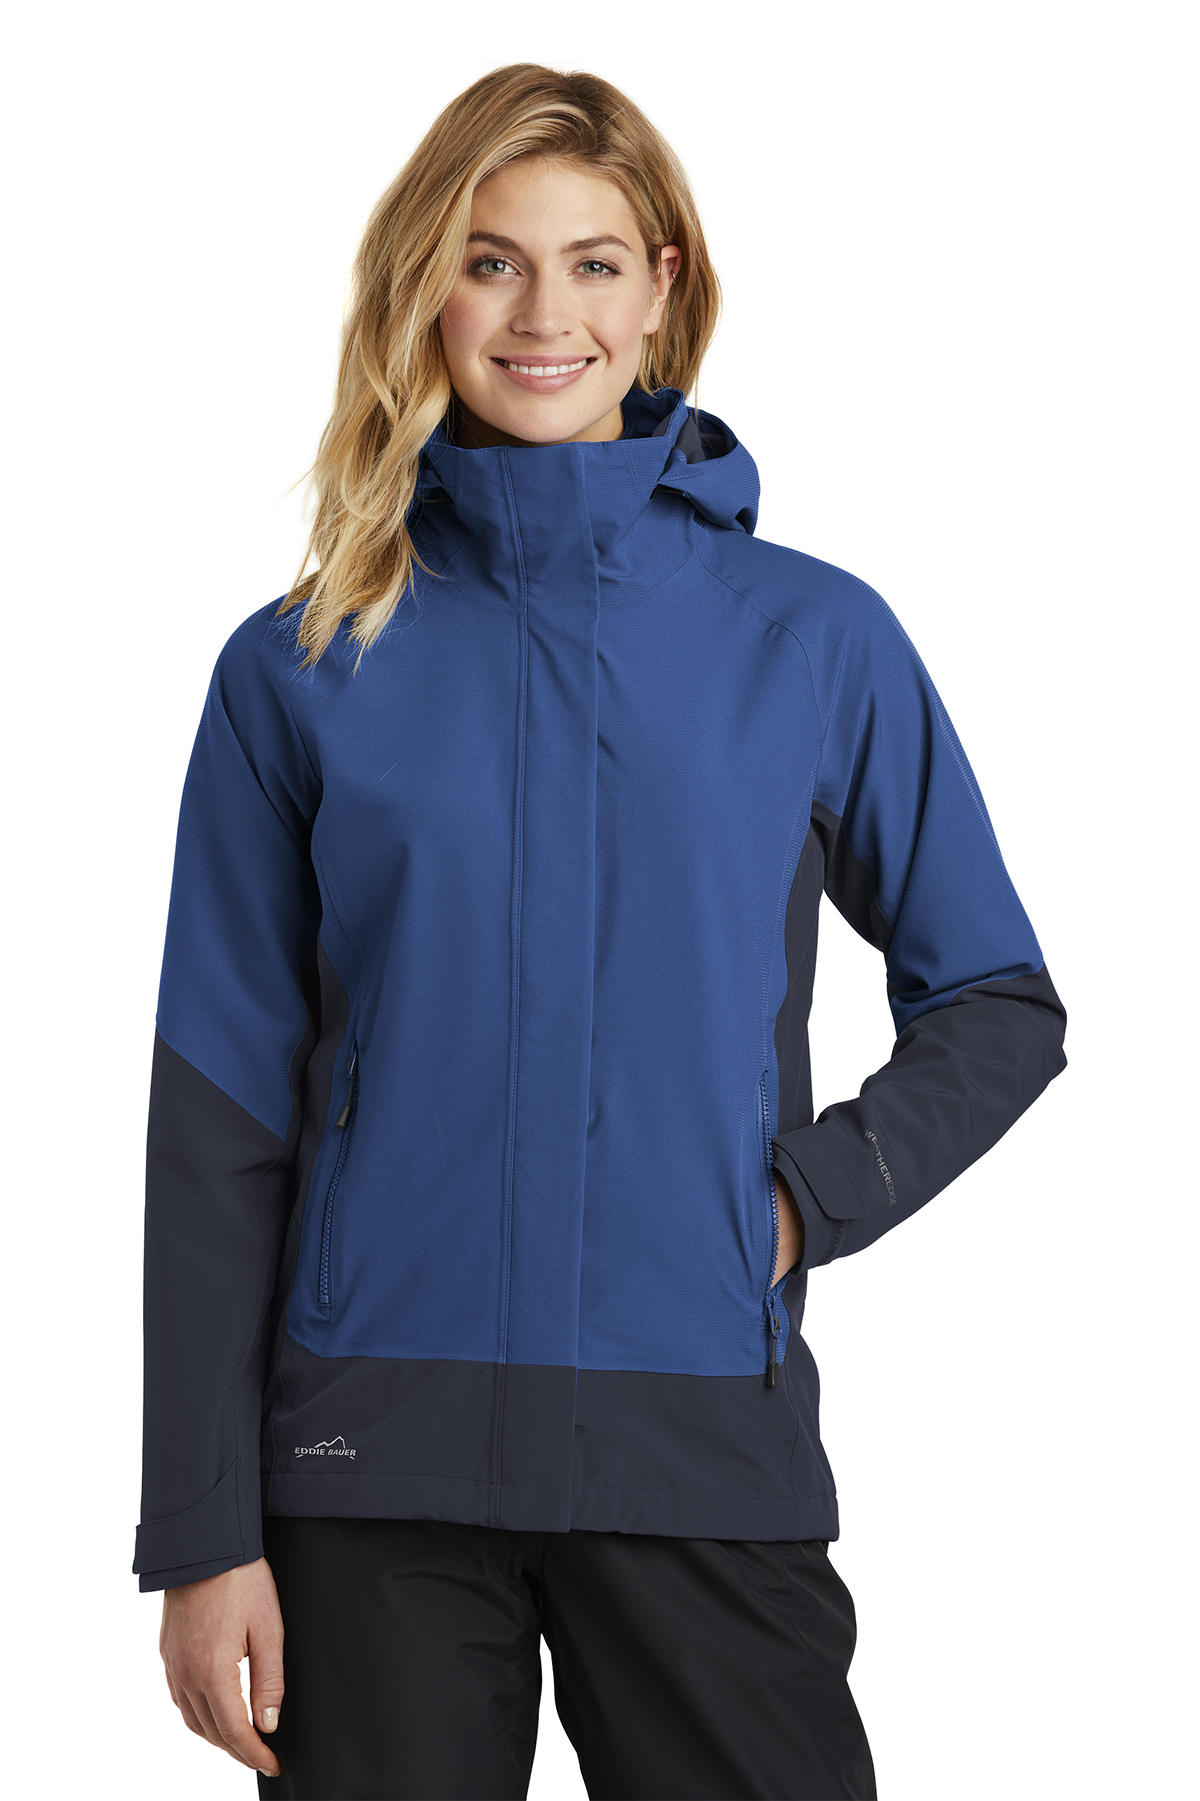 Eddie Bauer EB559 - Ladies WeatherEdge Jacket